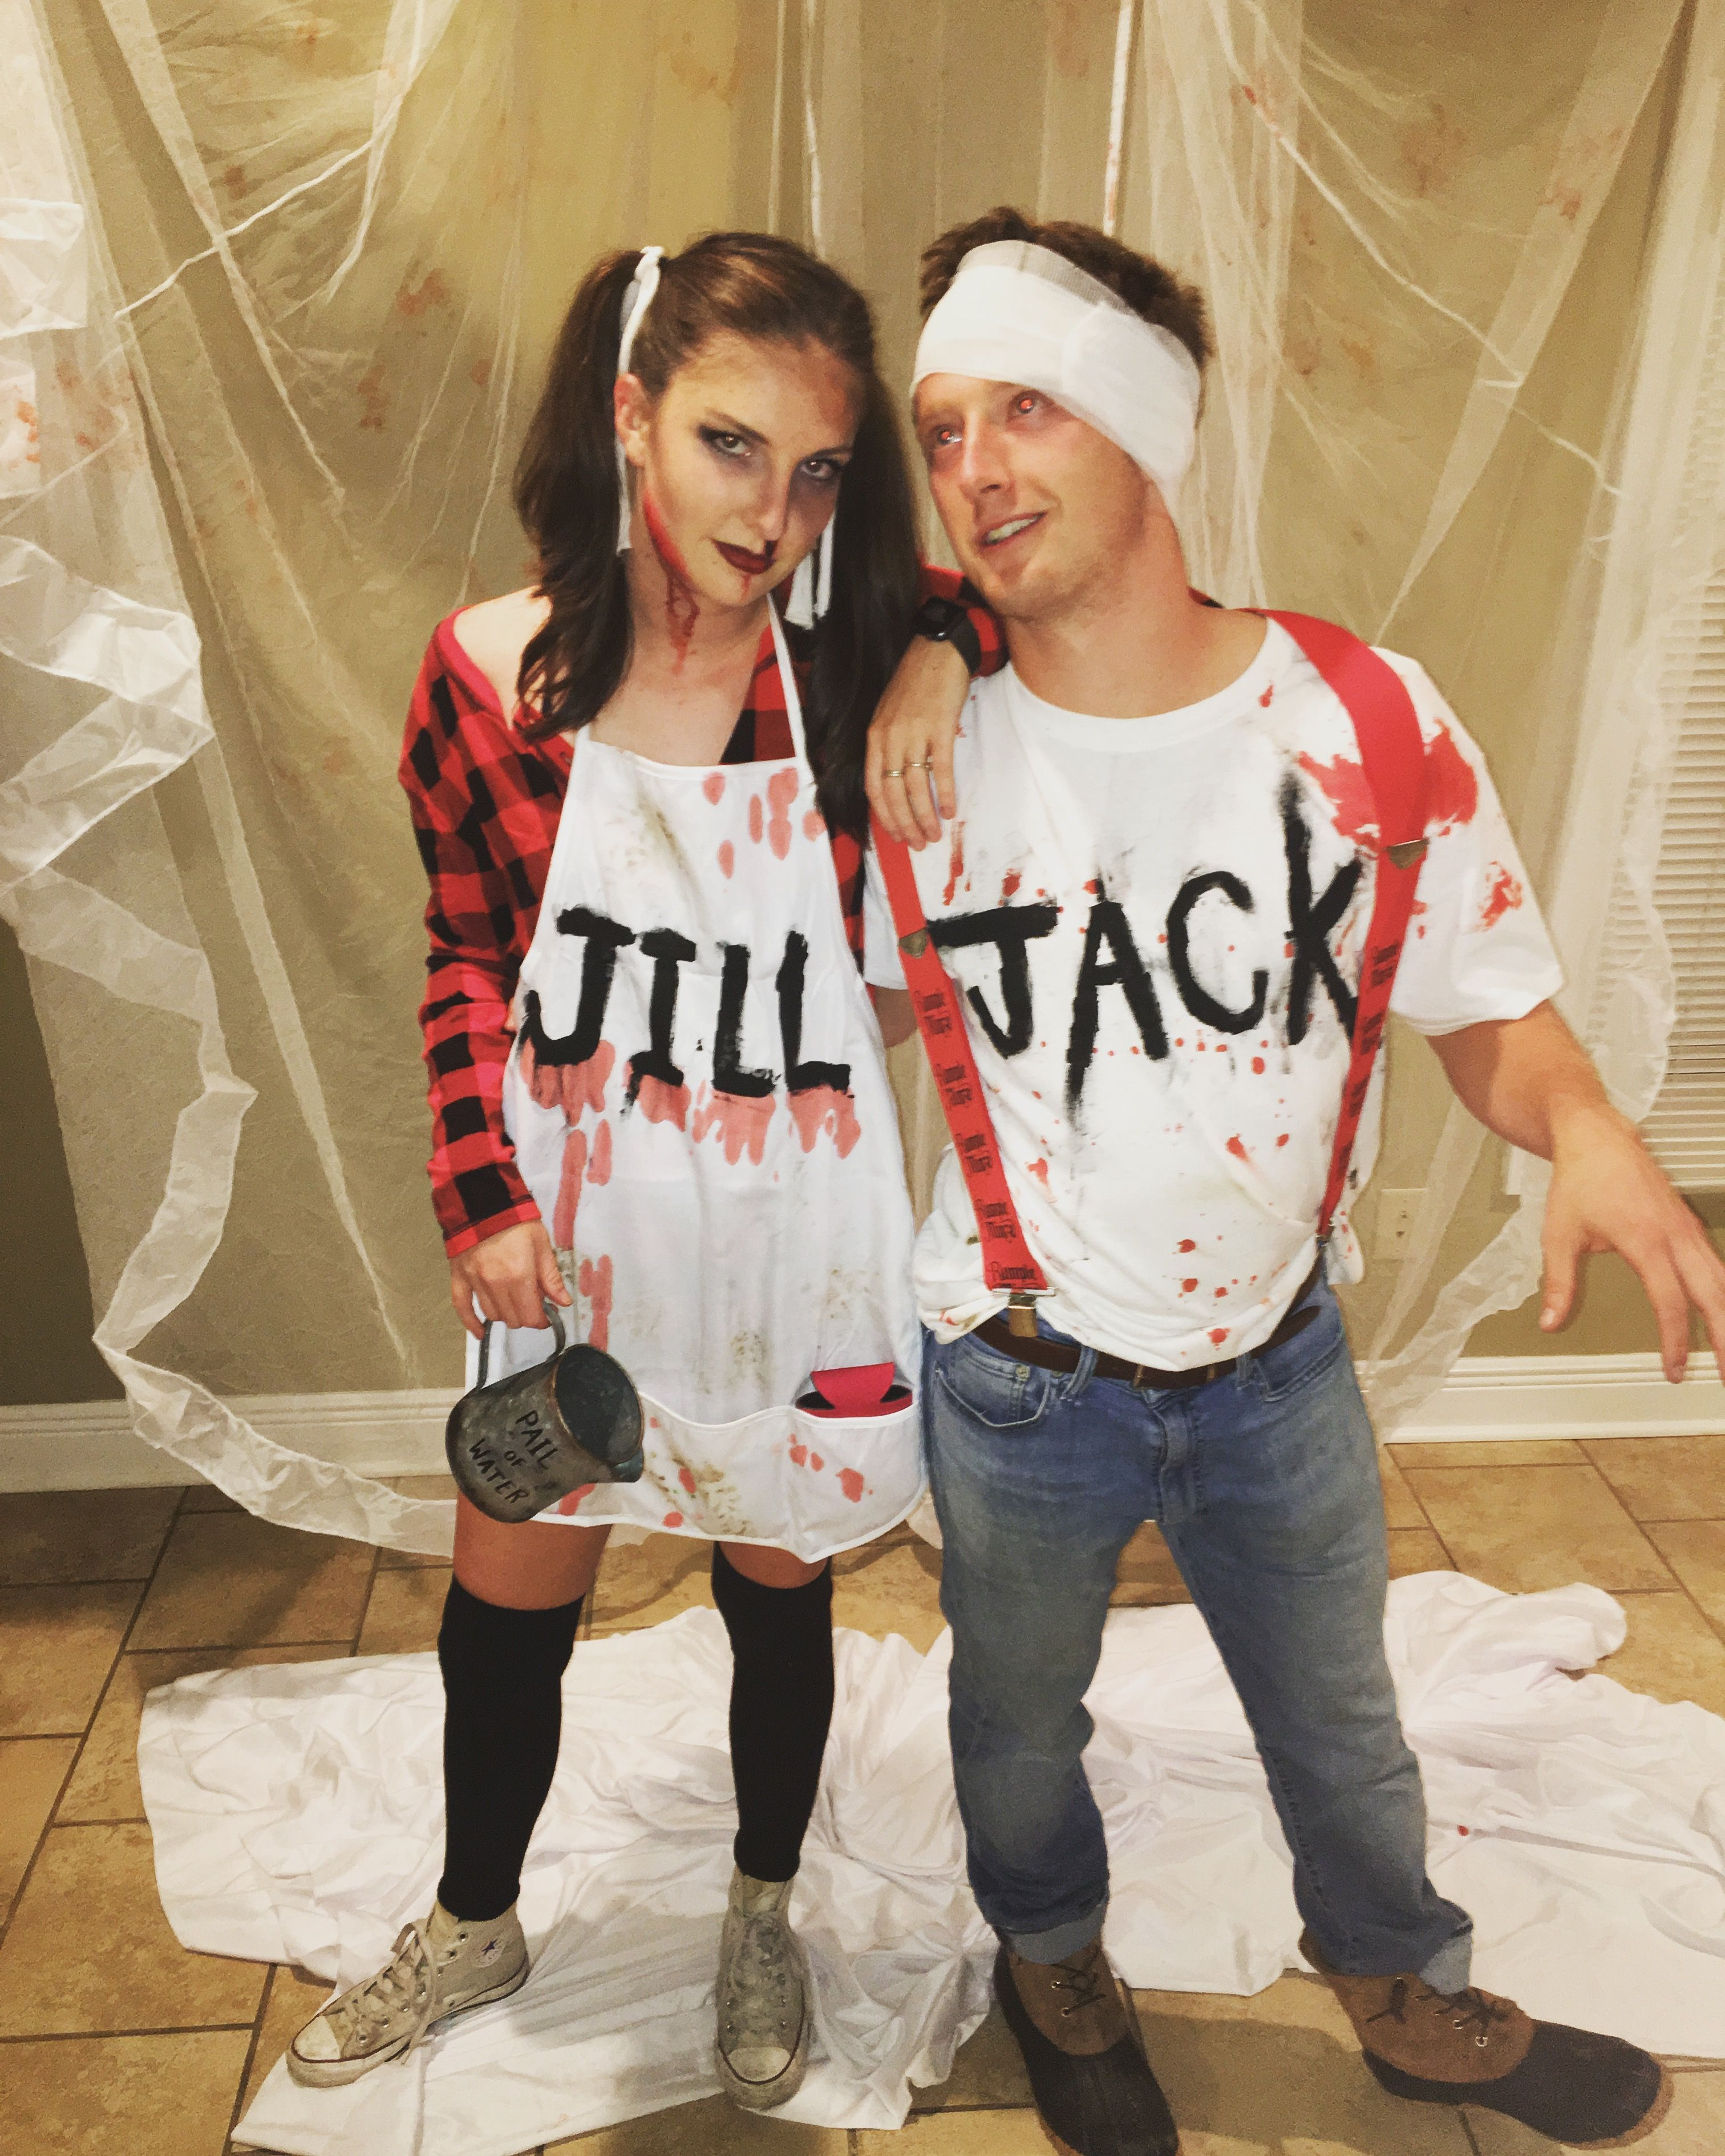 Jack and jill nursery rhyme Halloween costume scary couple costume